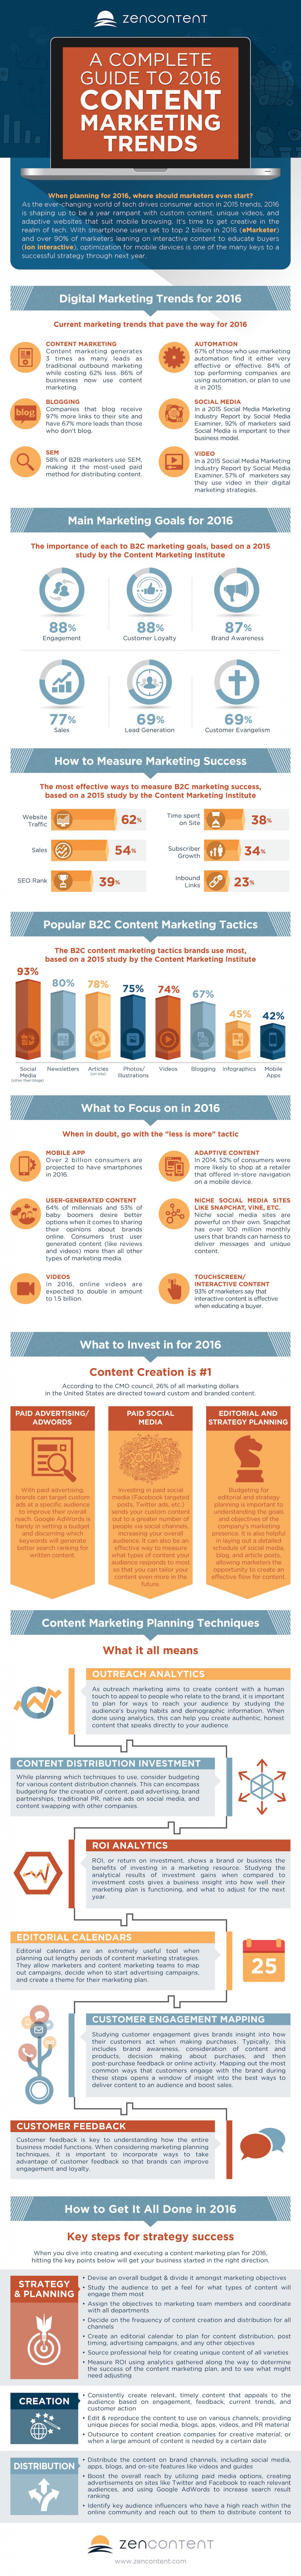 A Complete Guide to 2016 Content Marketing Trends [Infographic] Infographic